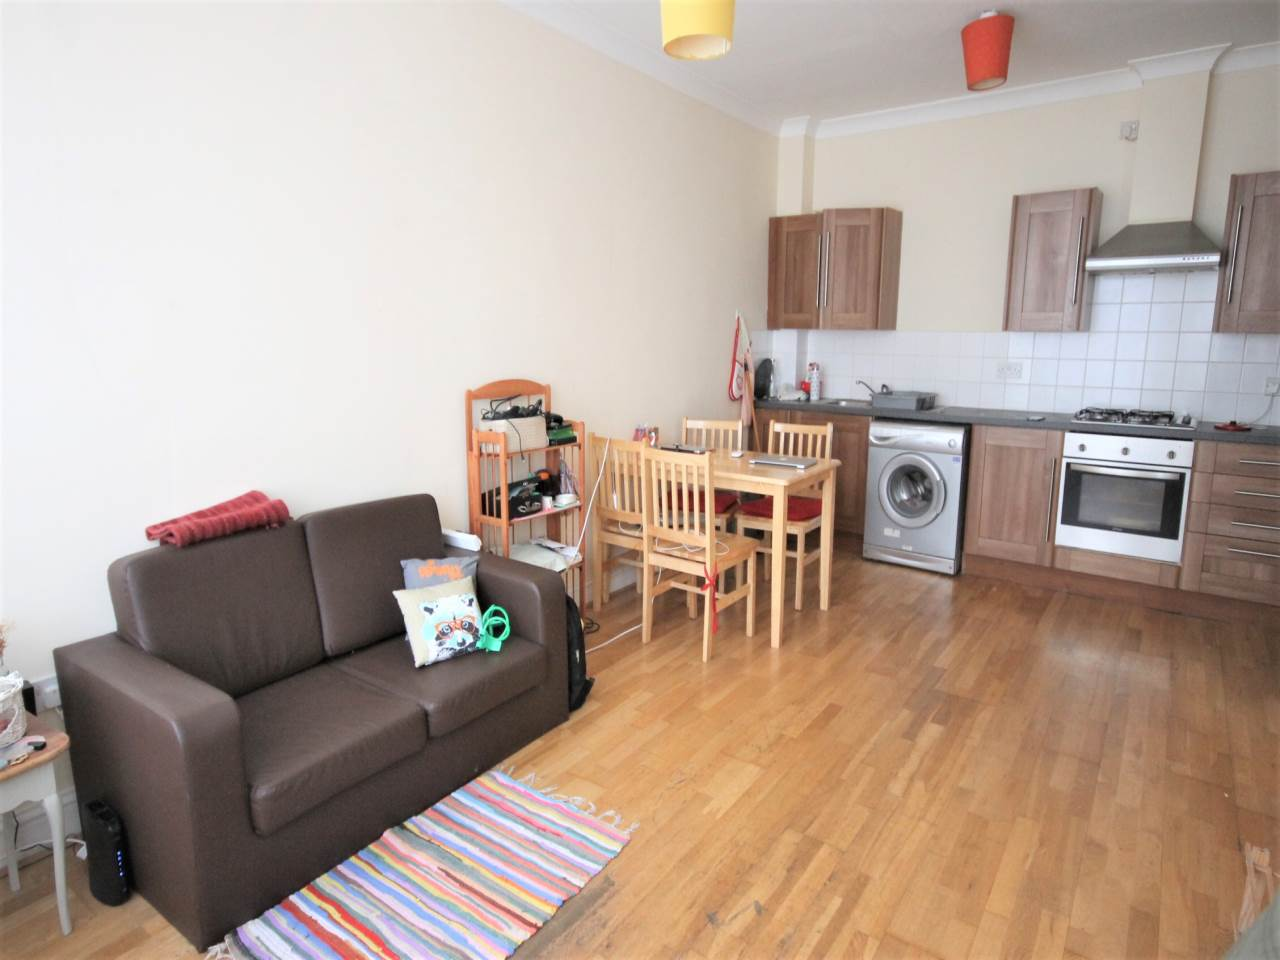 1 bed house to rent in Leytonstone, E11